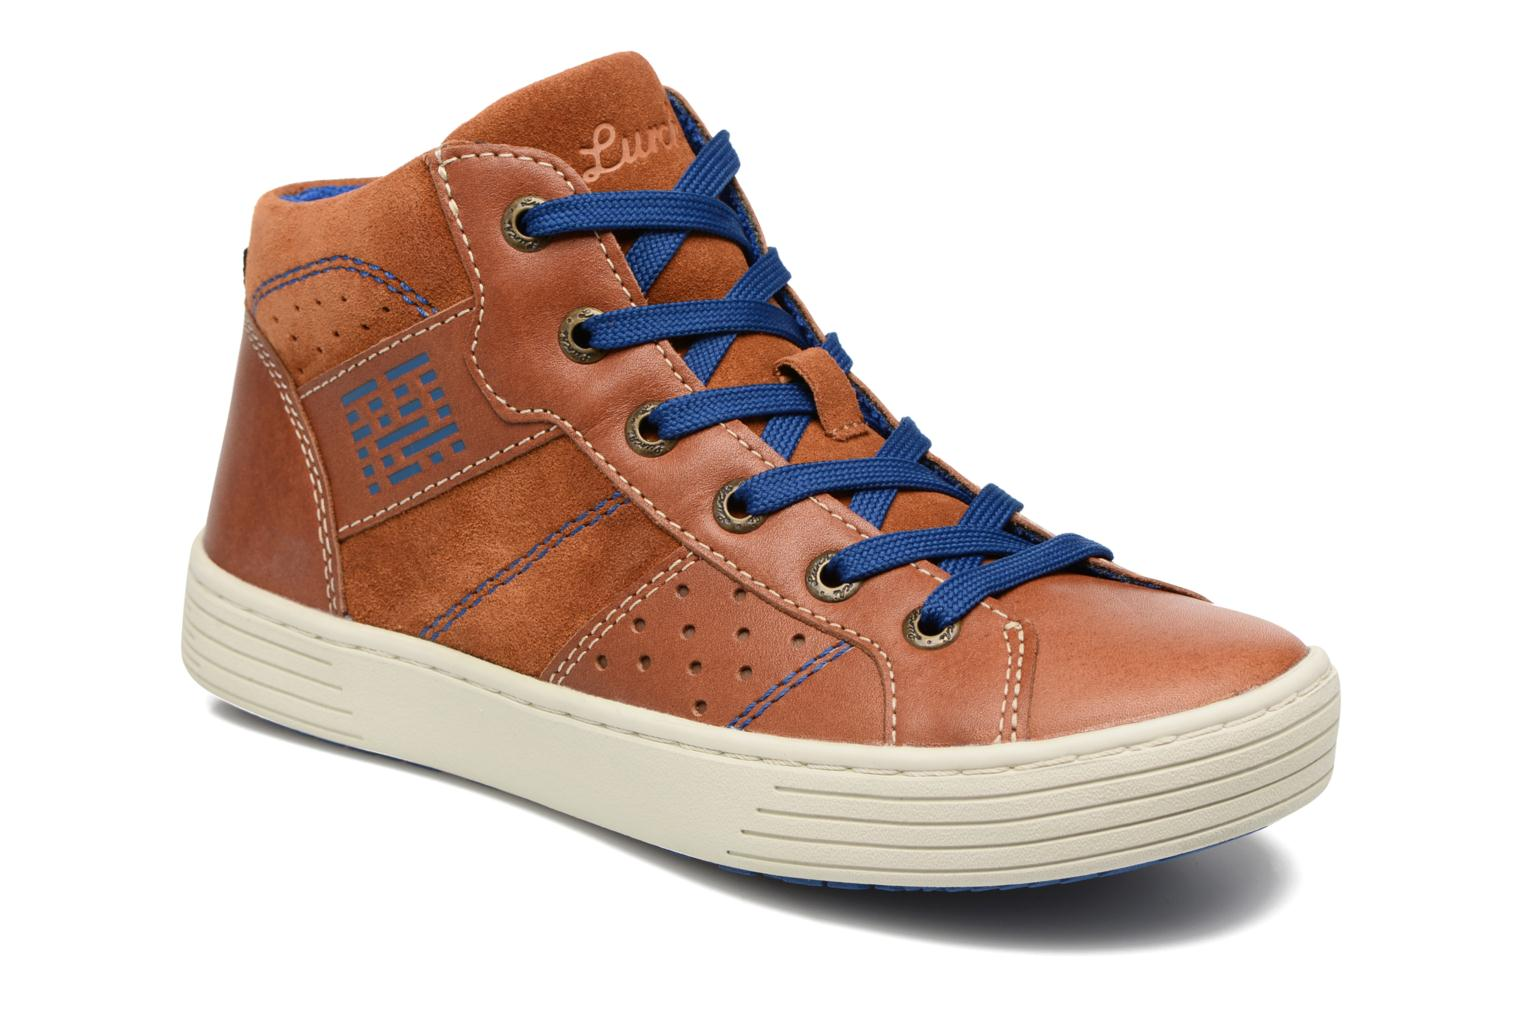 Sneakers Hannes by Lurchi by Salamander